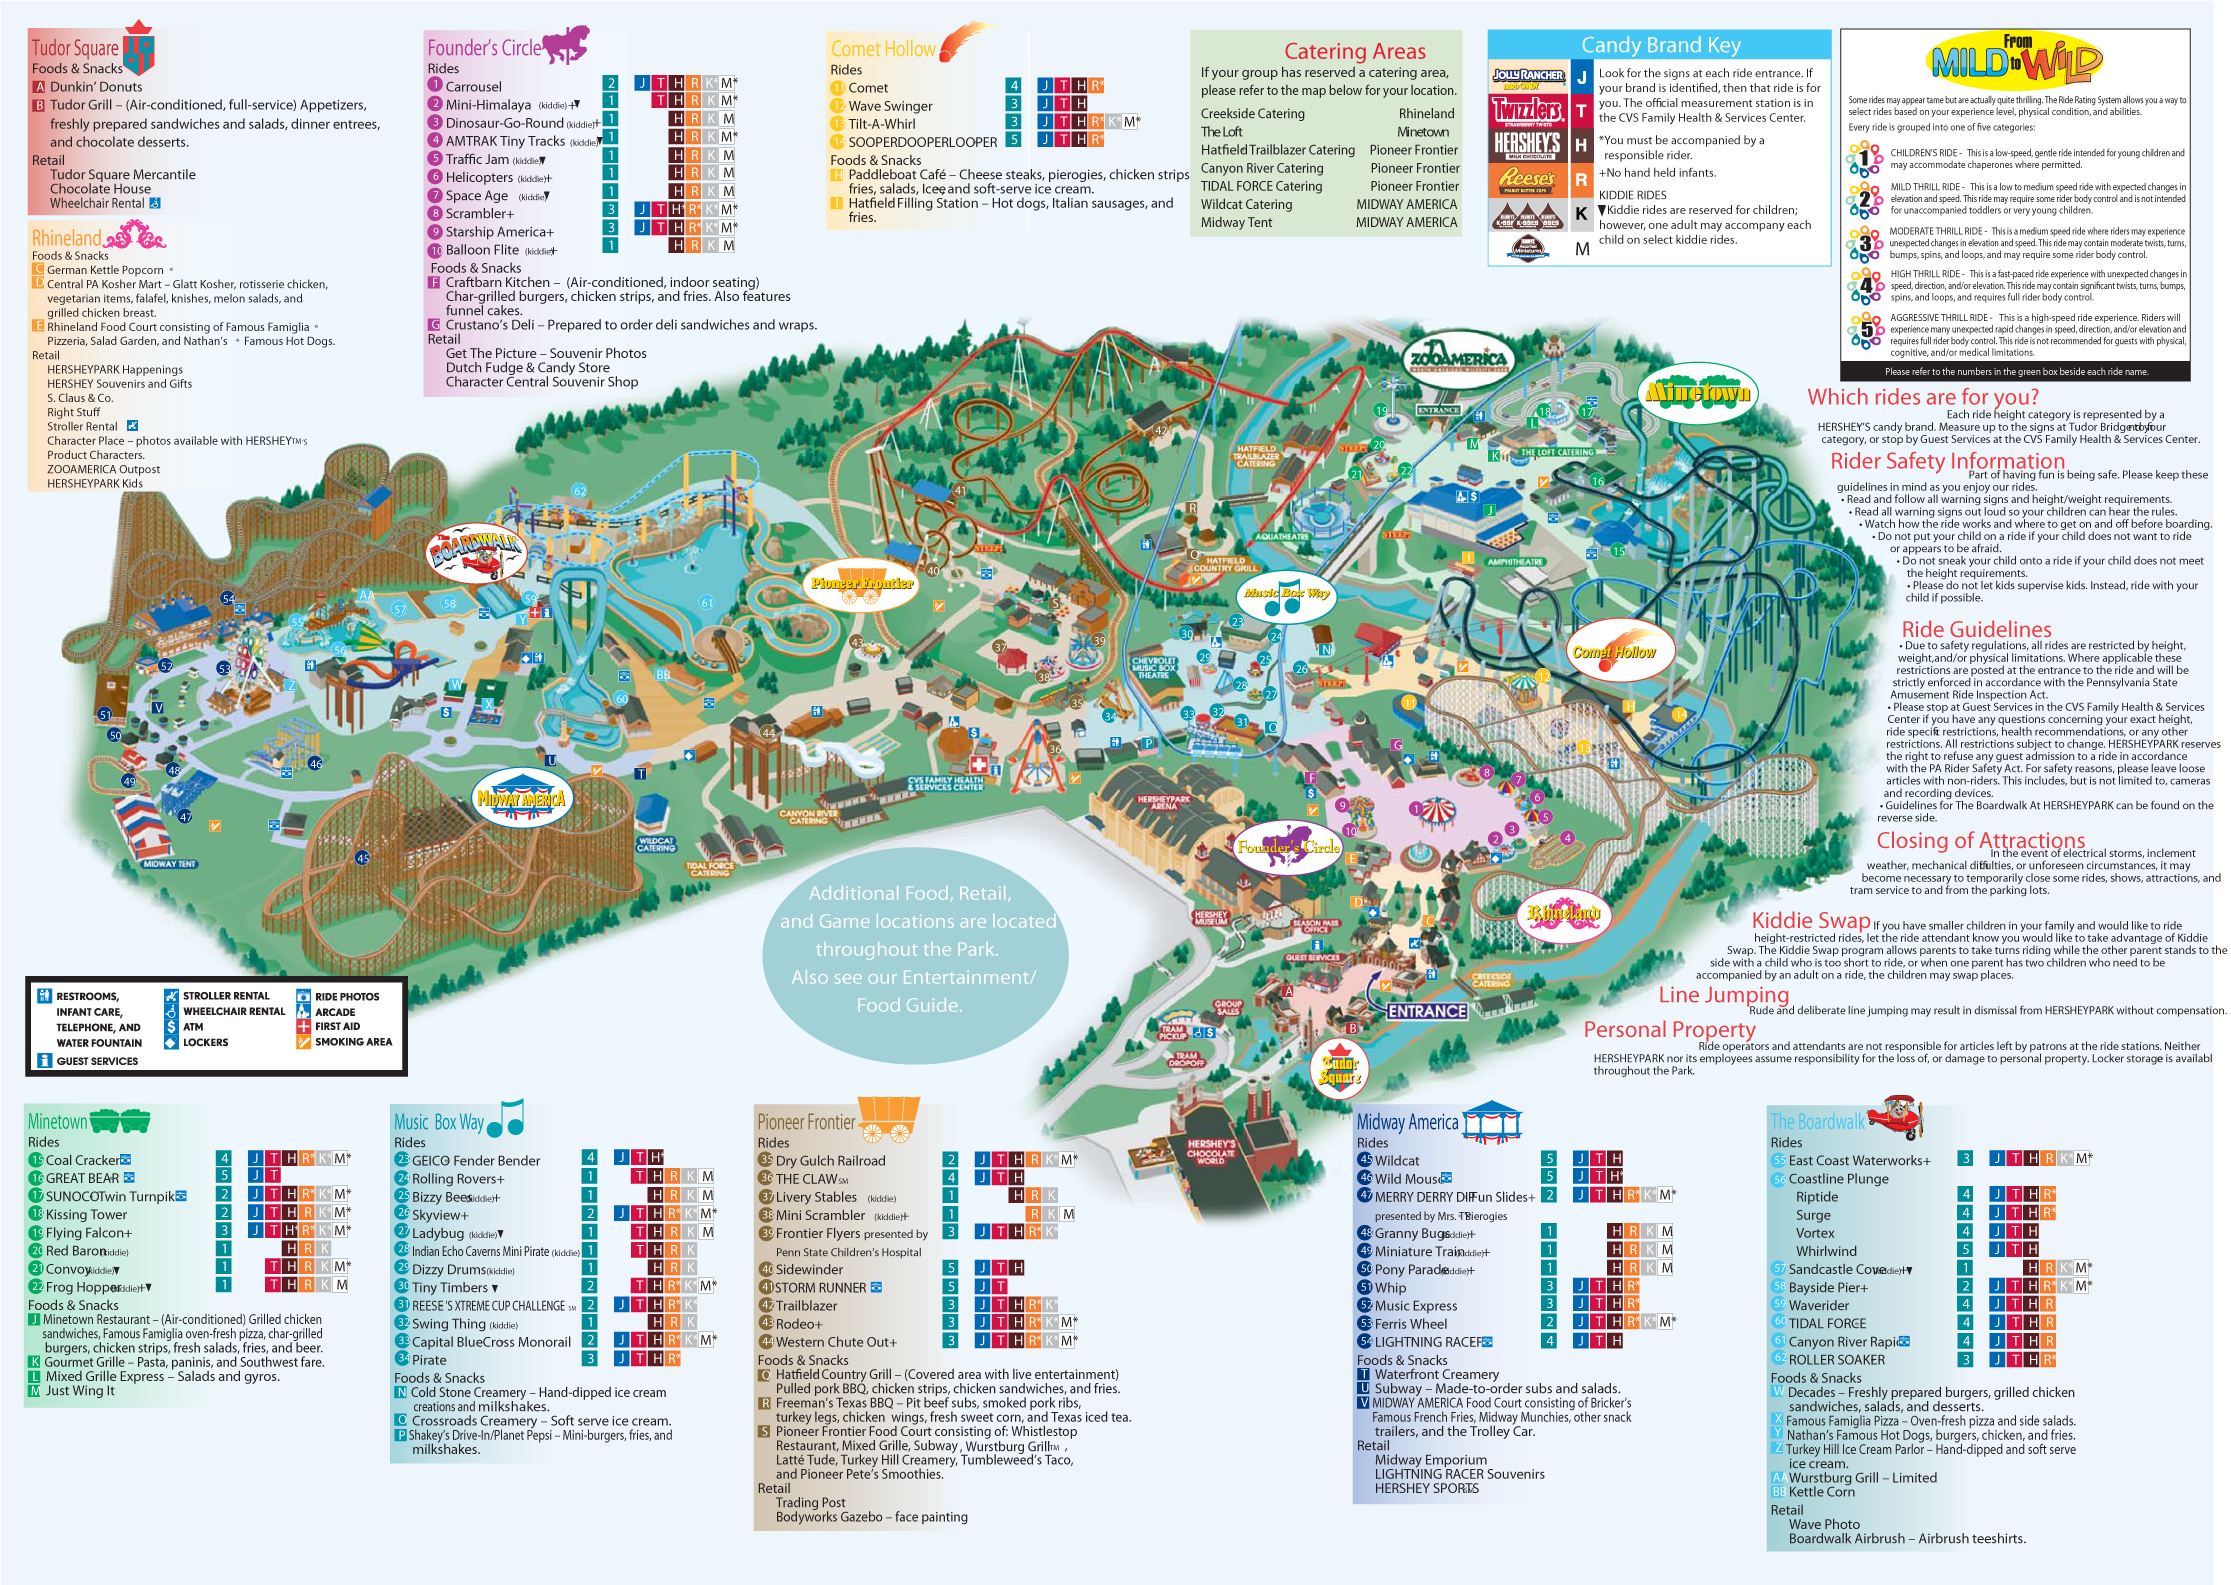 Hershey park official map see map details from hersheypa com created 5